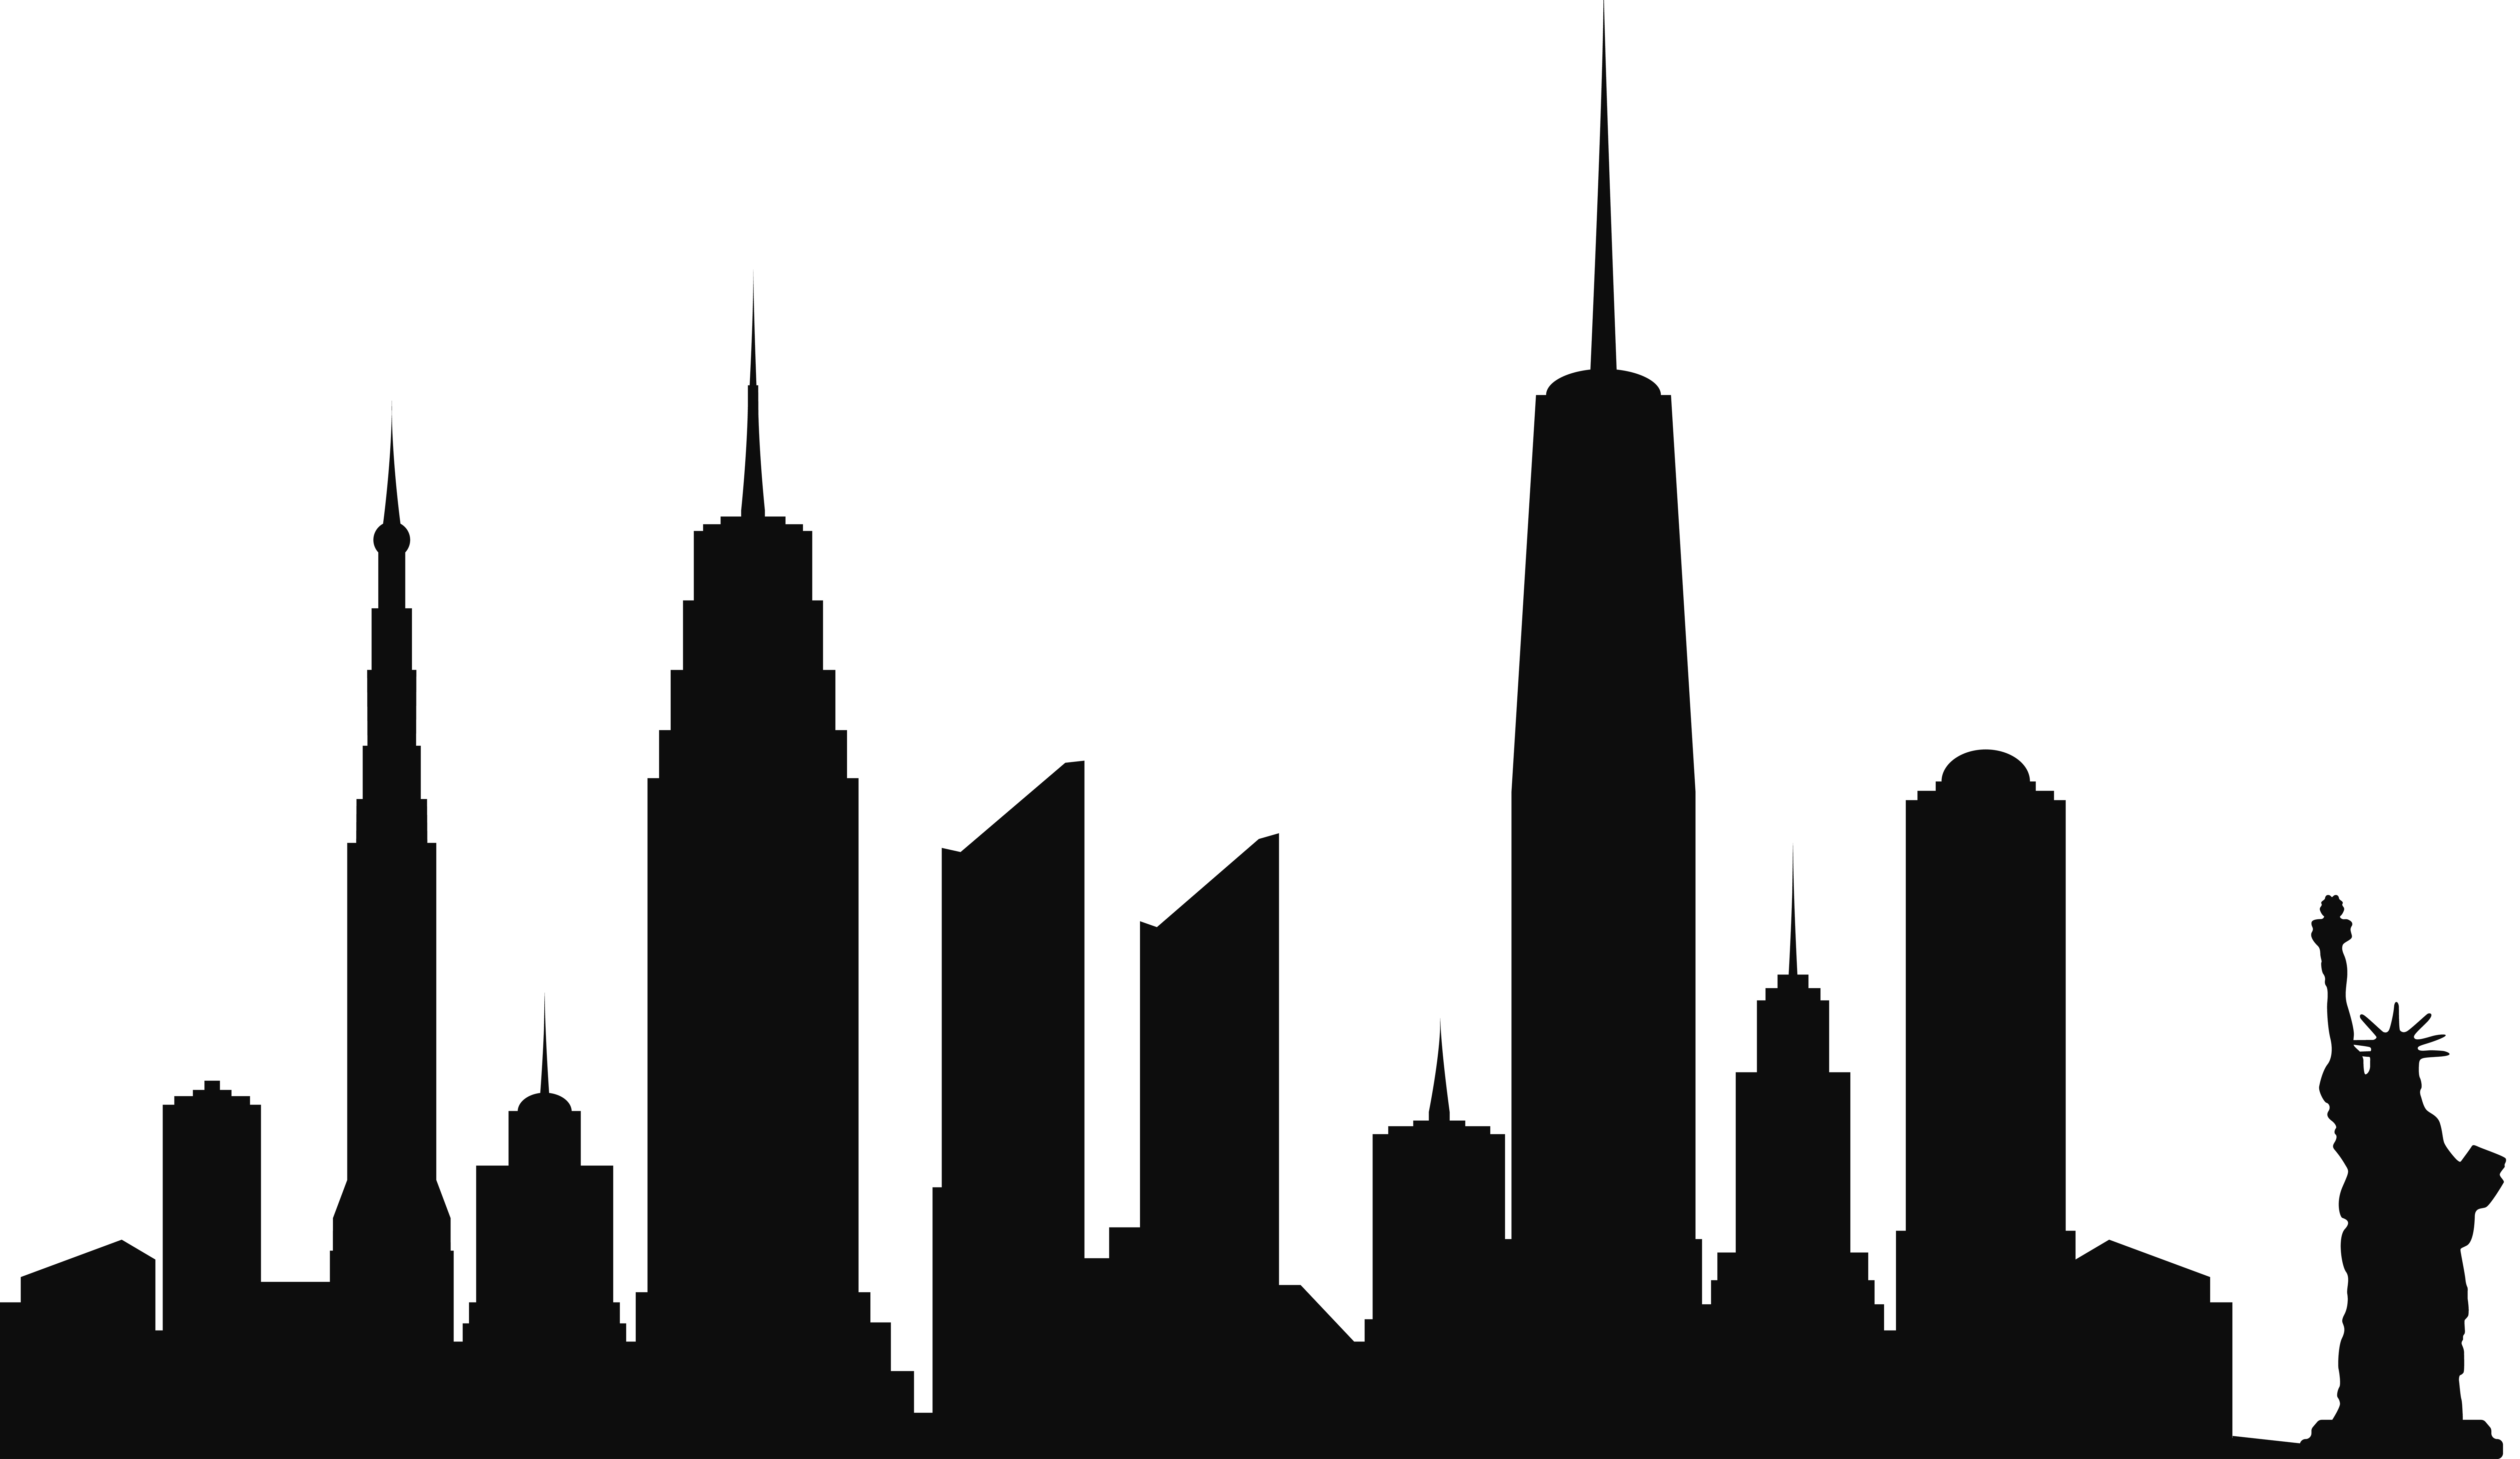 Nyc skyline silhouette at getdrawings free for personal use 8000x4631 new york city skyline silhouette png clip artu200b gallery thecheapjerseys Image collections